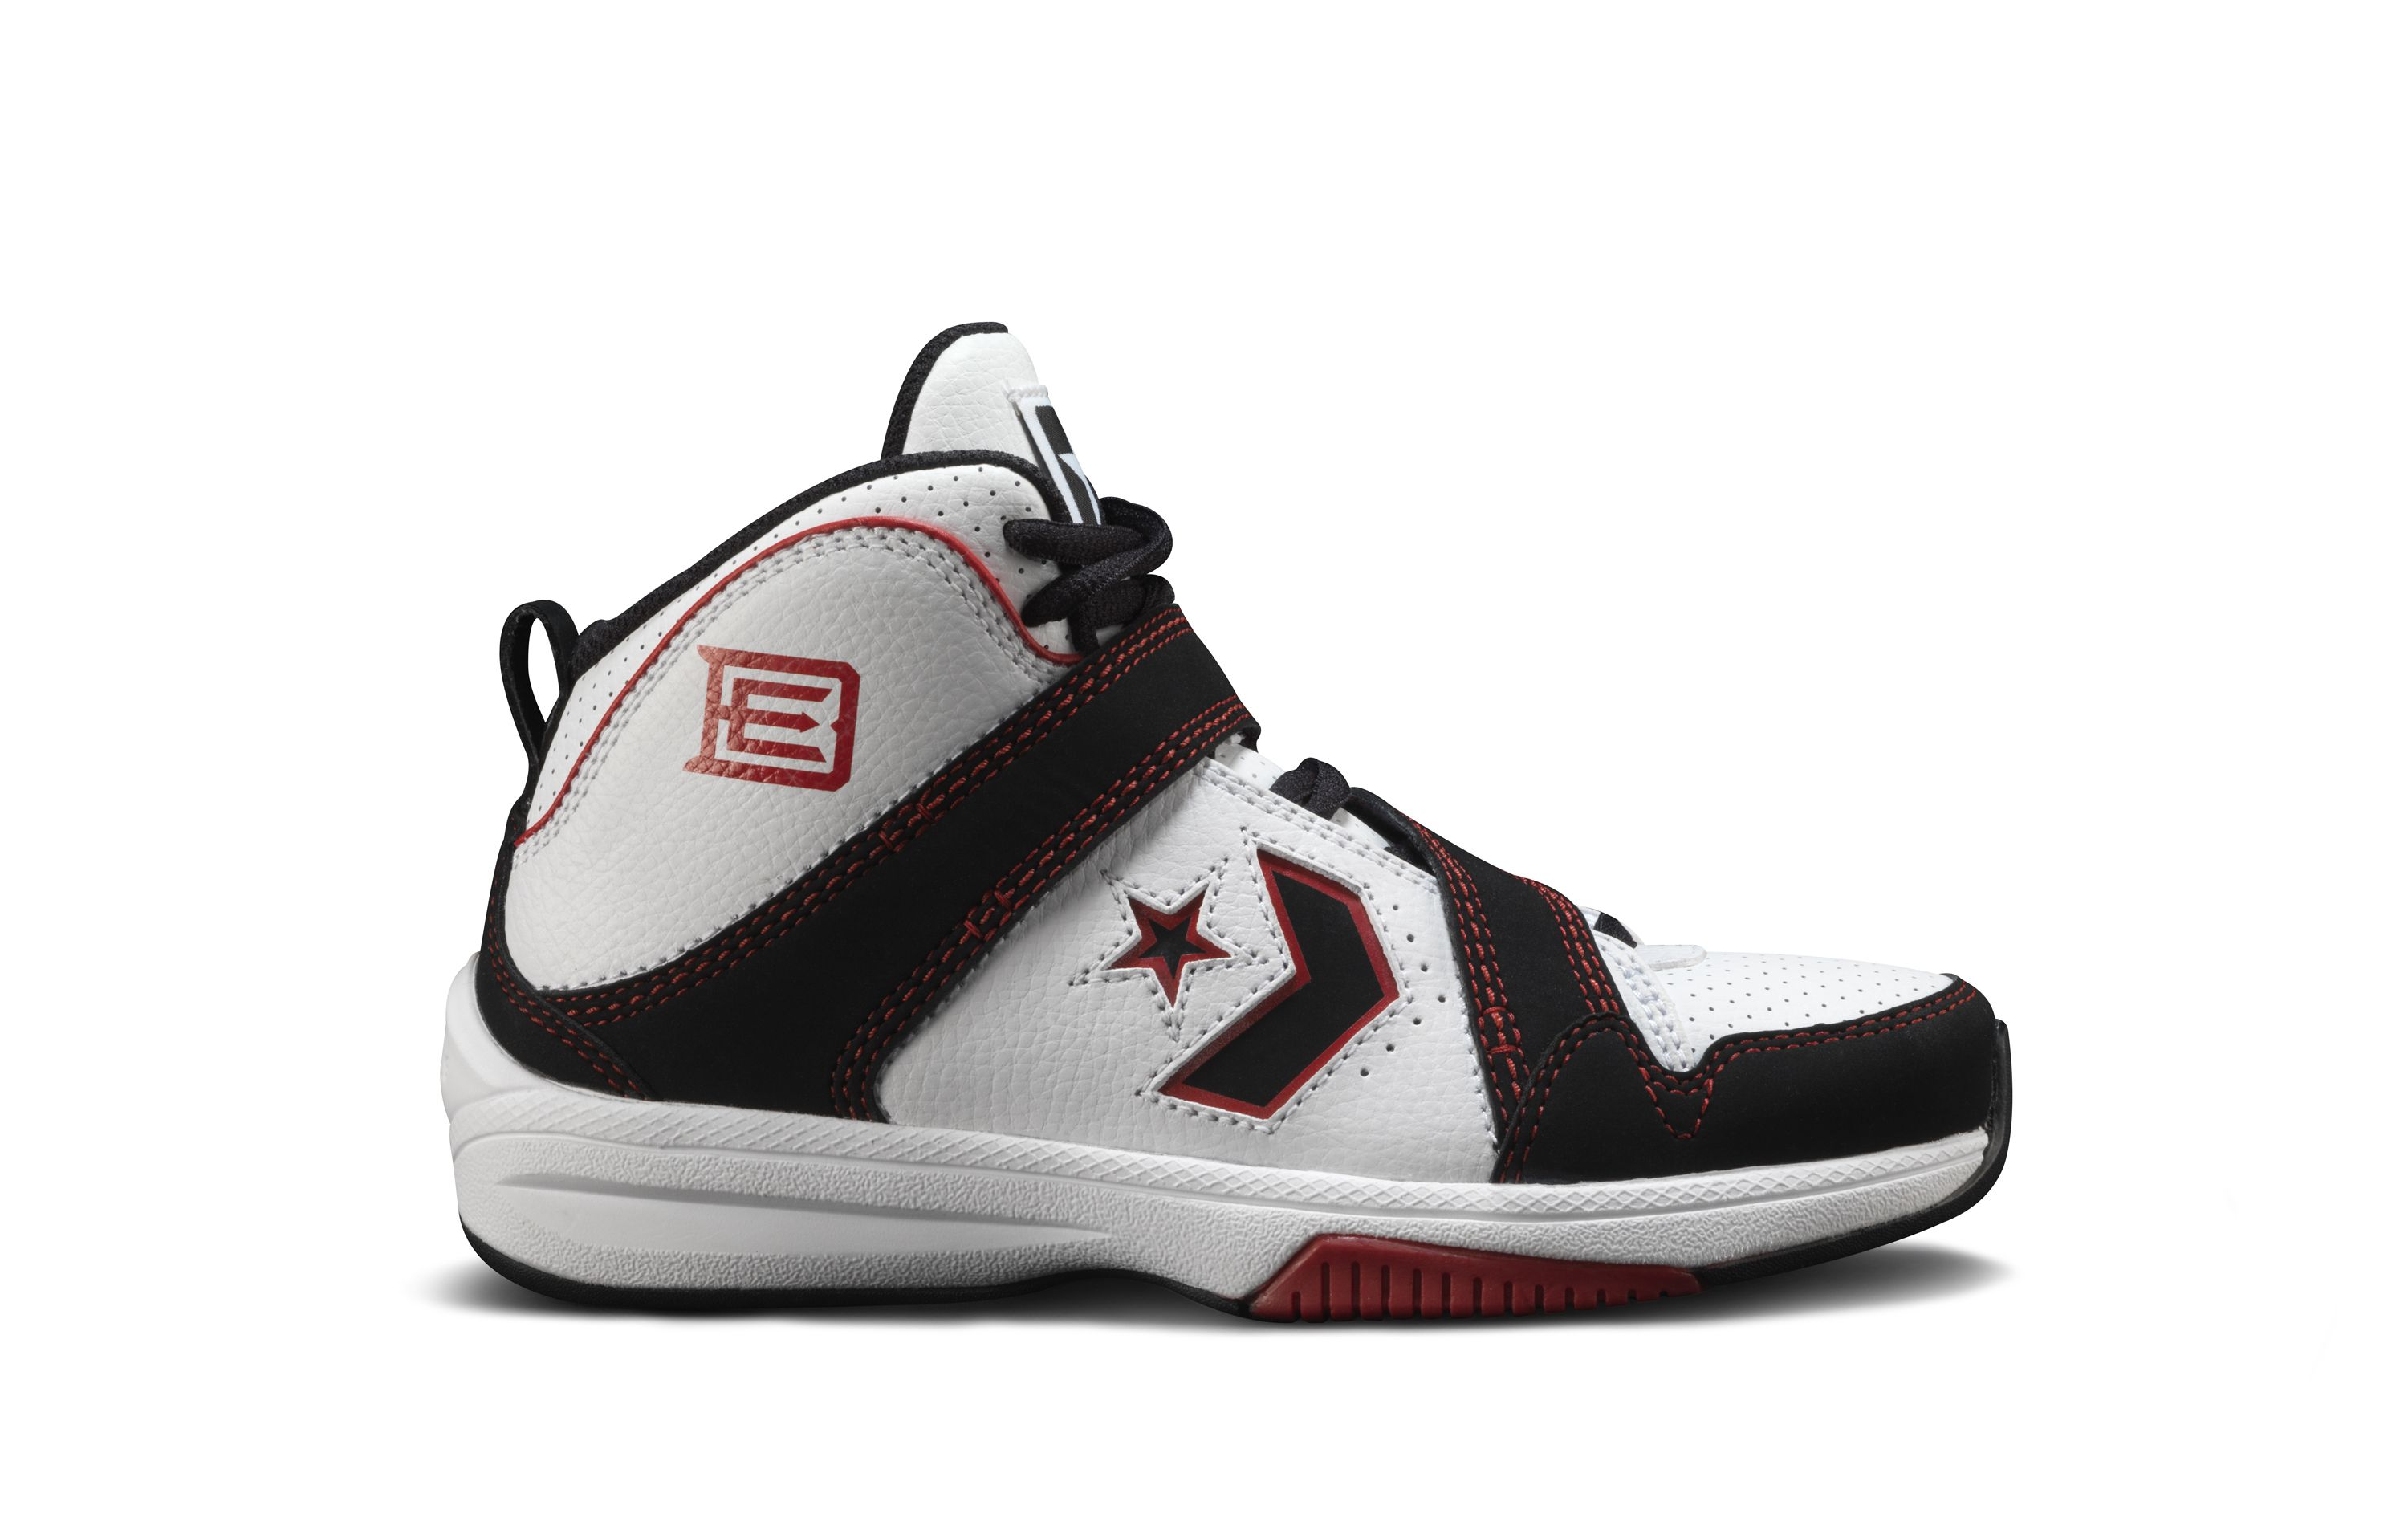 Converse and Elton Brand Introduce the EB2 Signature Shoe to